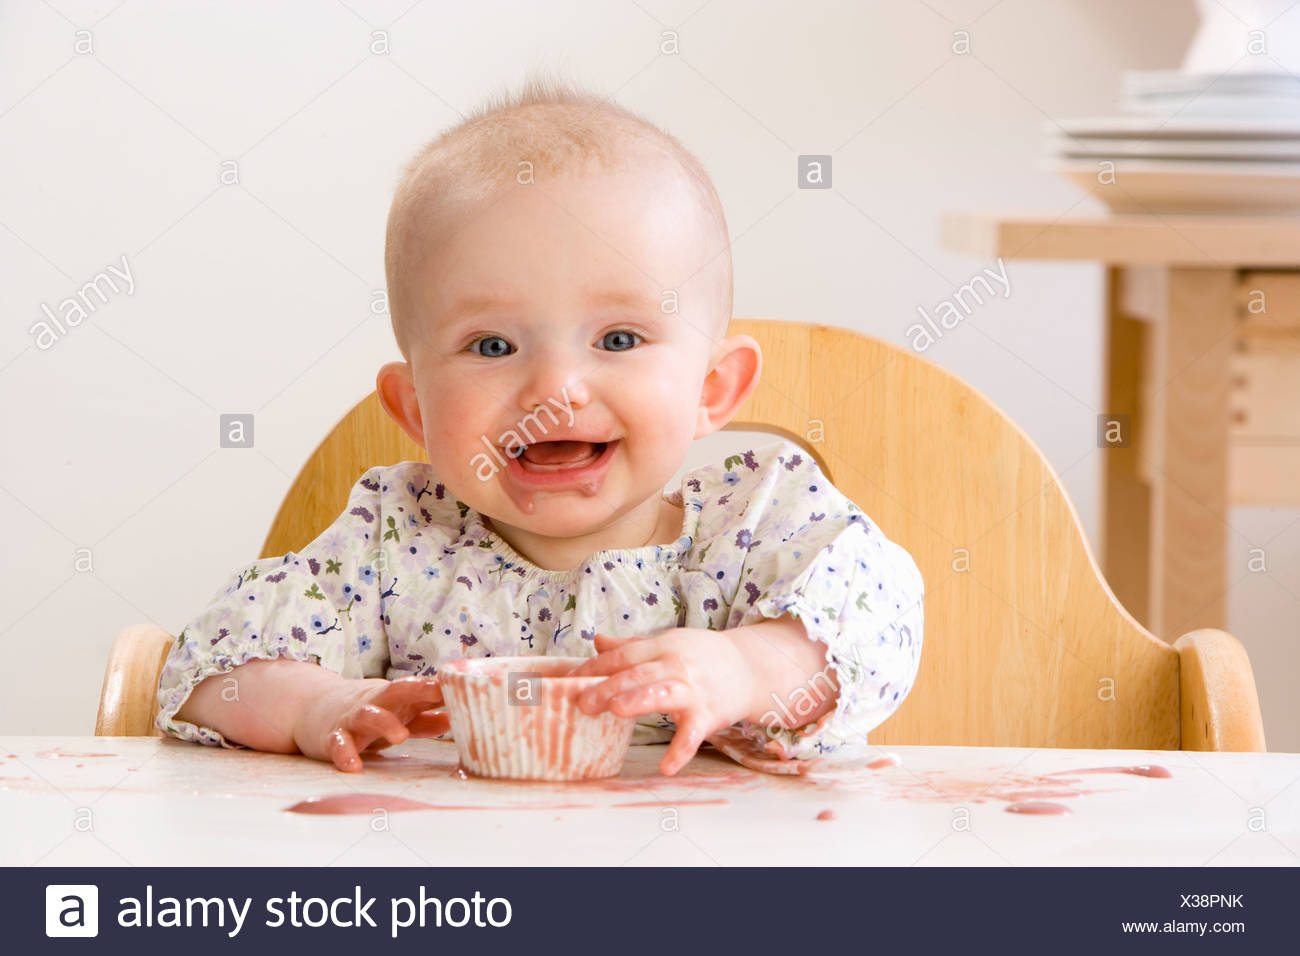 Messy baby girl in high chair eating - Stock Image